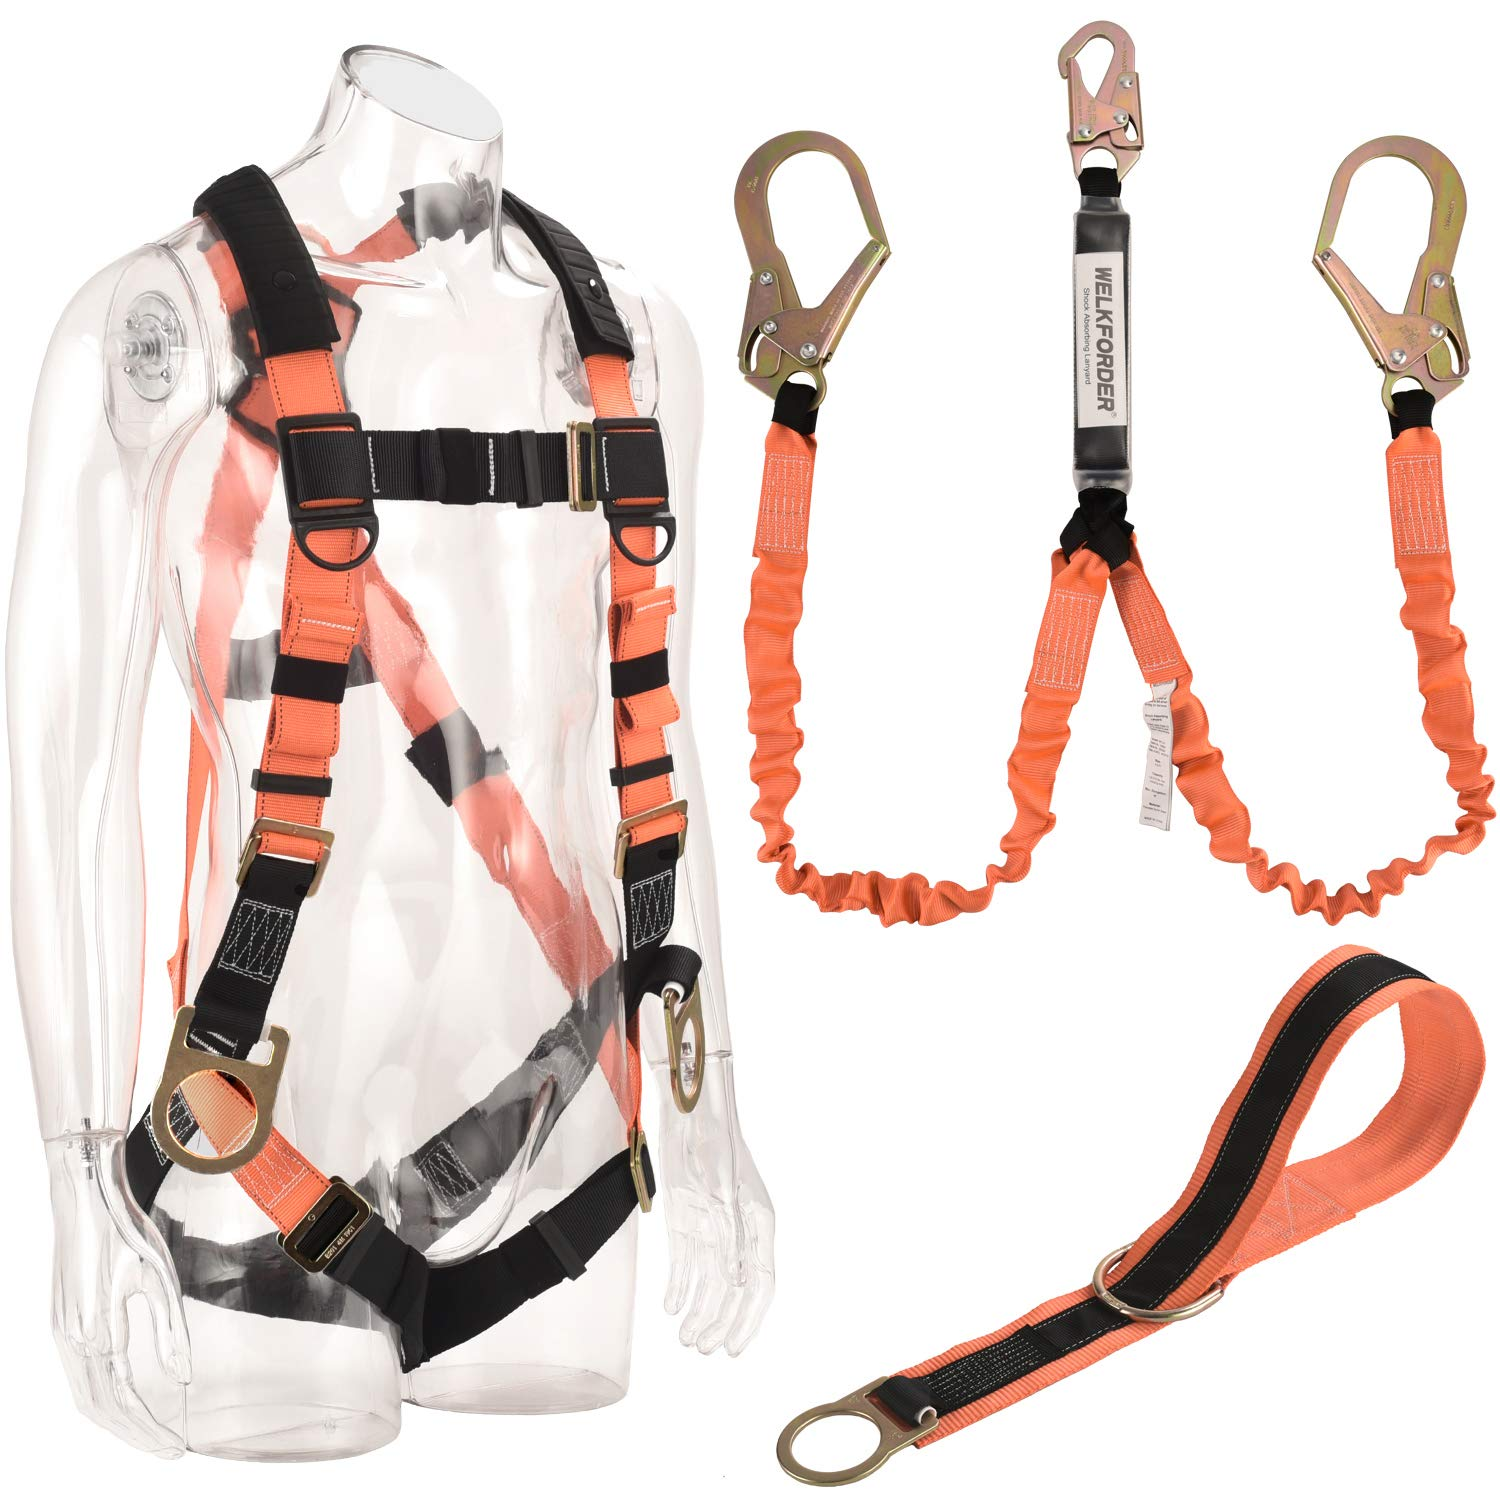 WELKFORDER 3D-Rings Industrial Fall Protection Safety Harness Kit With Double Leg 6-Foot Shock Absorber Stretch Lanyard | 4-Foot Anchor ANSI Compliant Personal Fall Arrest System(PFAS) by WELKFORDER